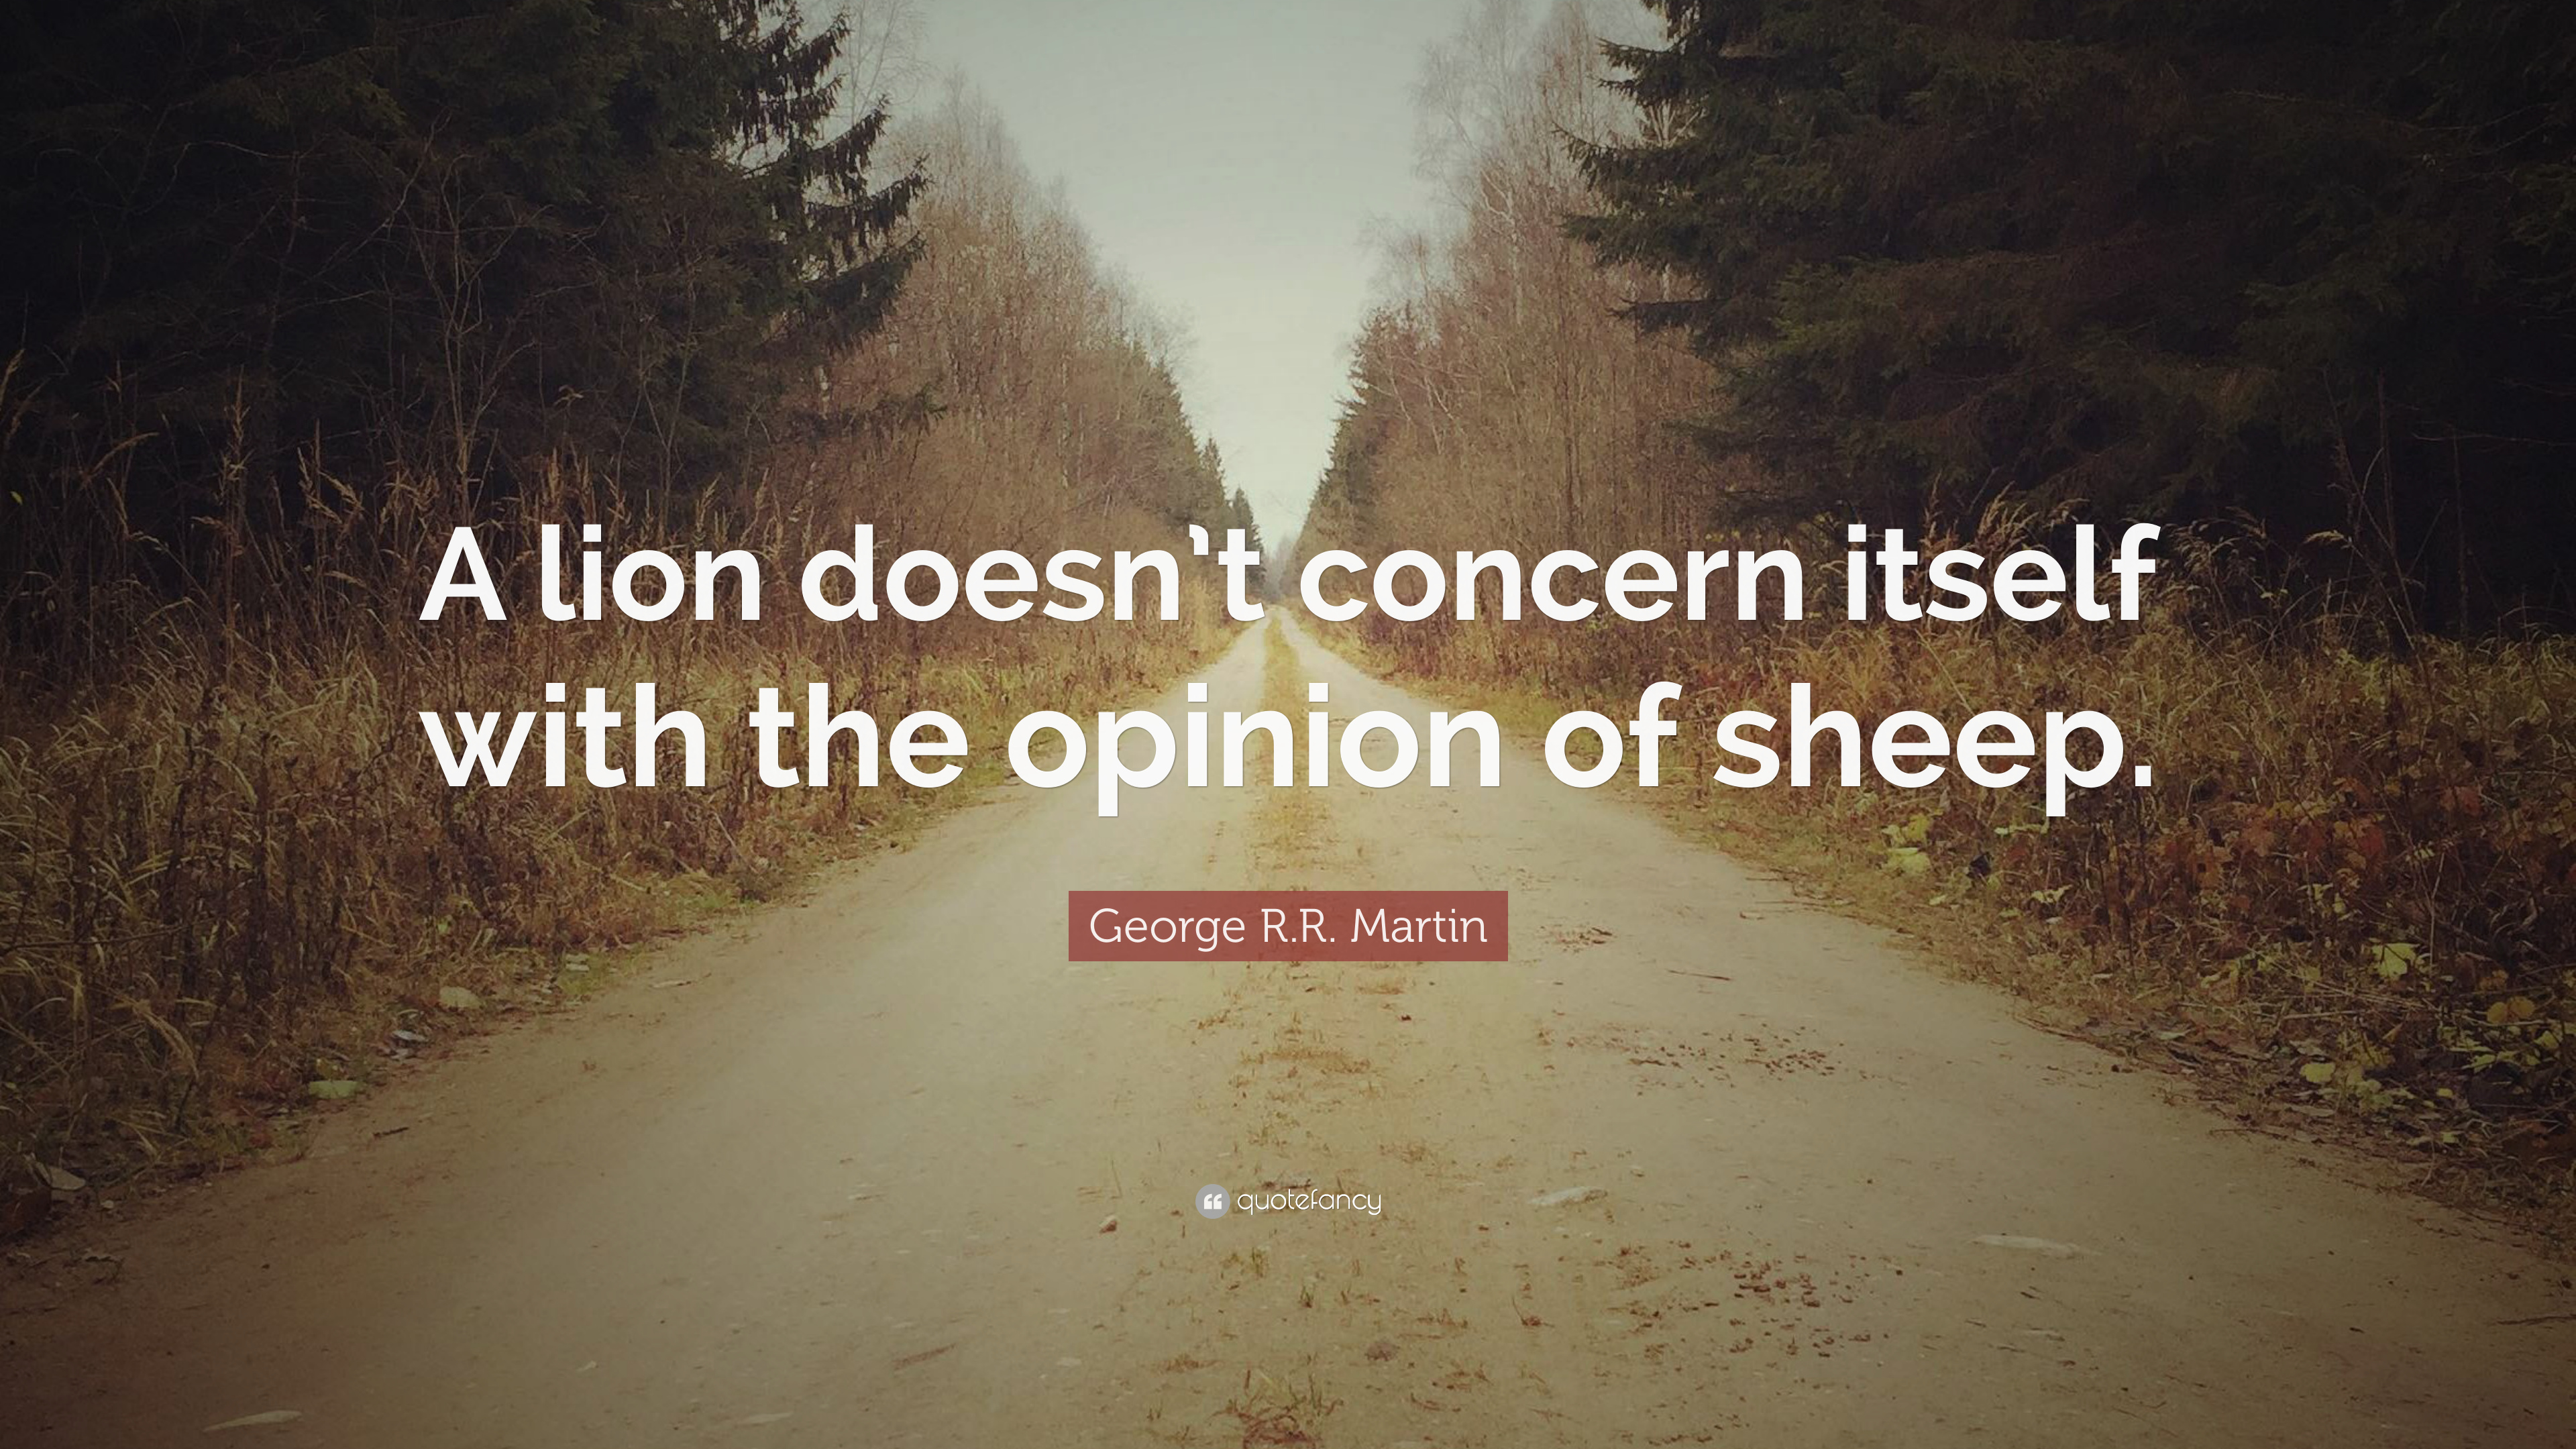 Roald Dahl Quotes Wallpaper George R R Martin Quote A Lion Doesn T Concern Itself